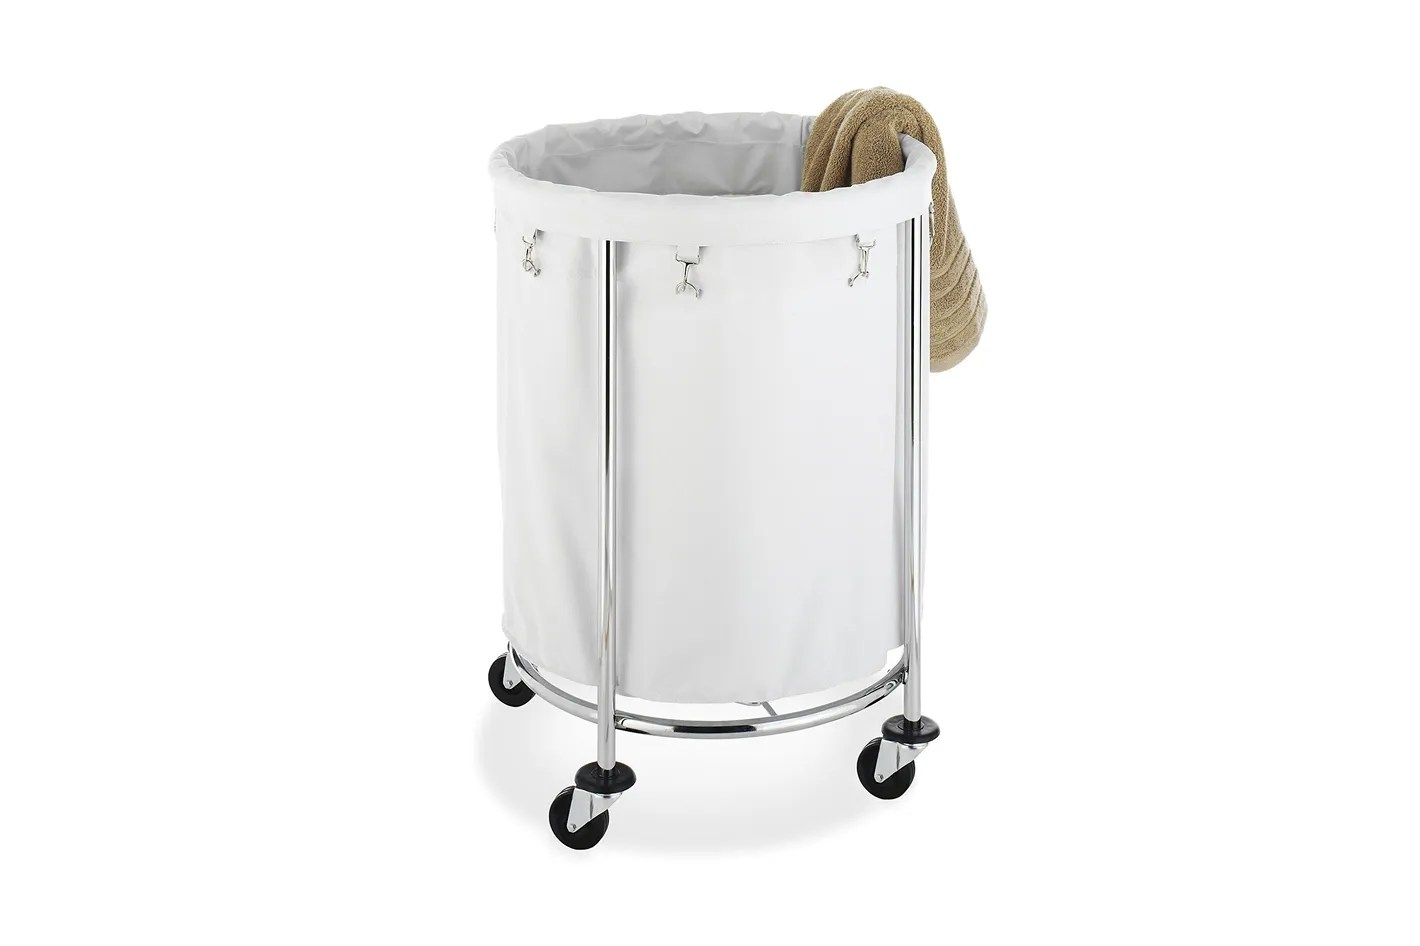 Laundry Bin With Wheels 12 Best Laundry Baskets And Hampers 2018